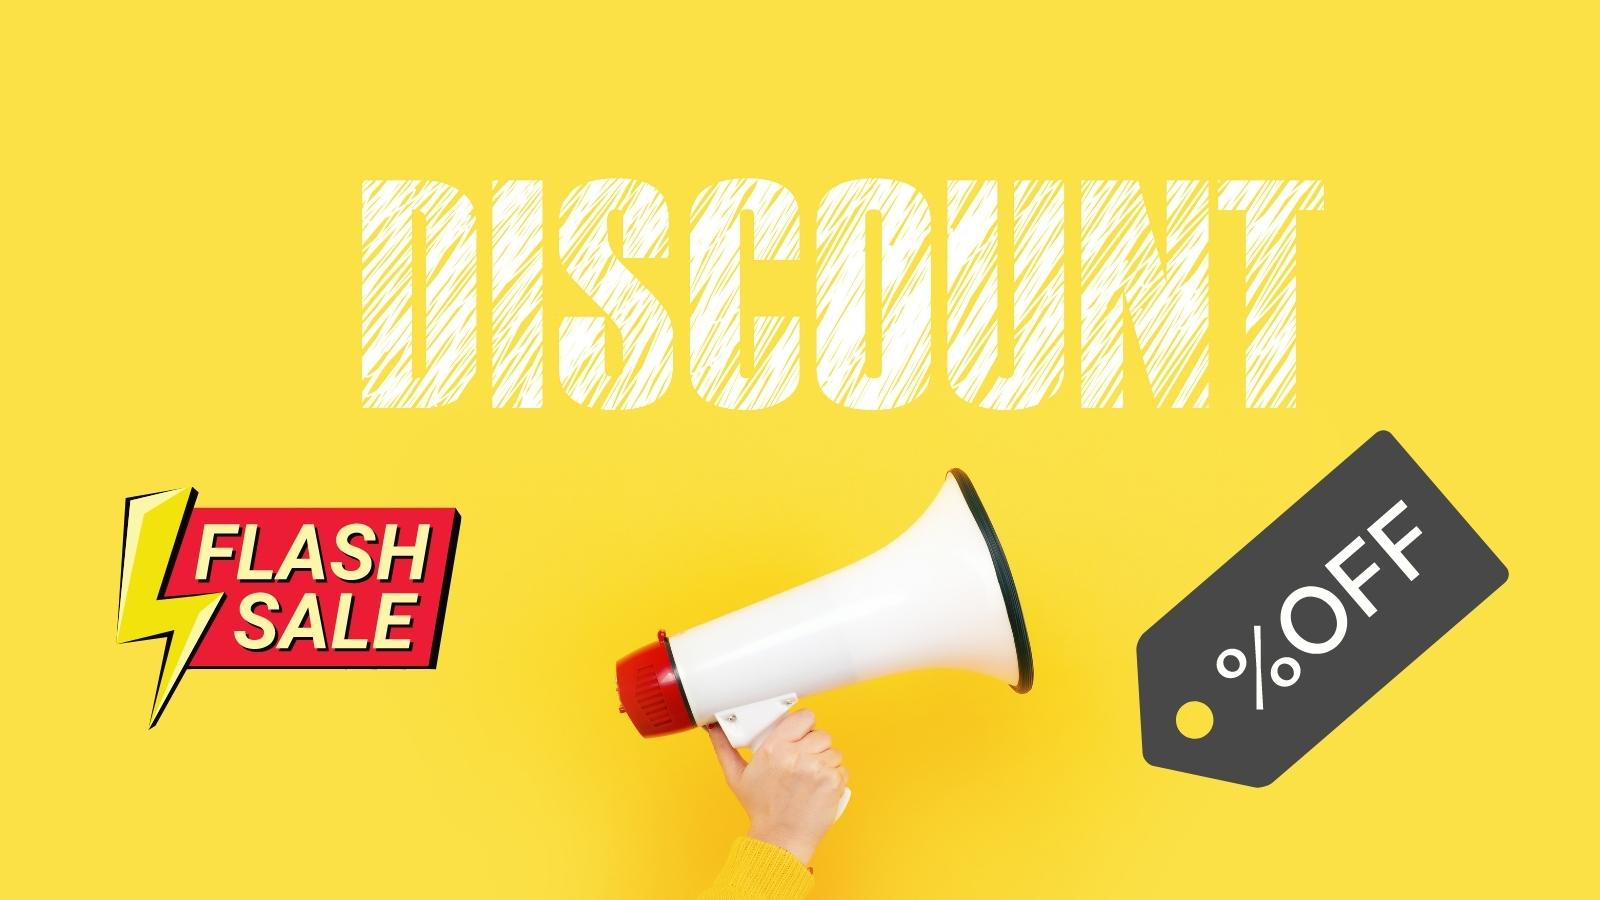 offer discounts to increase sales